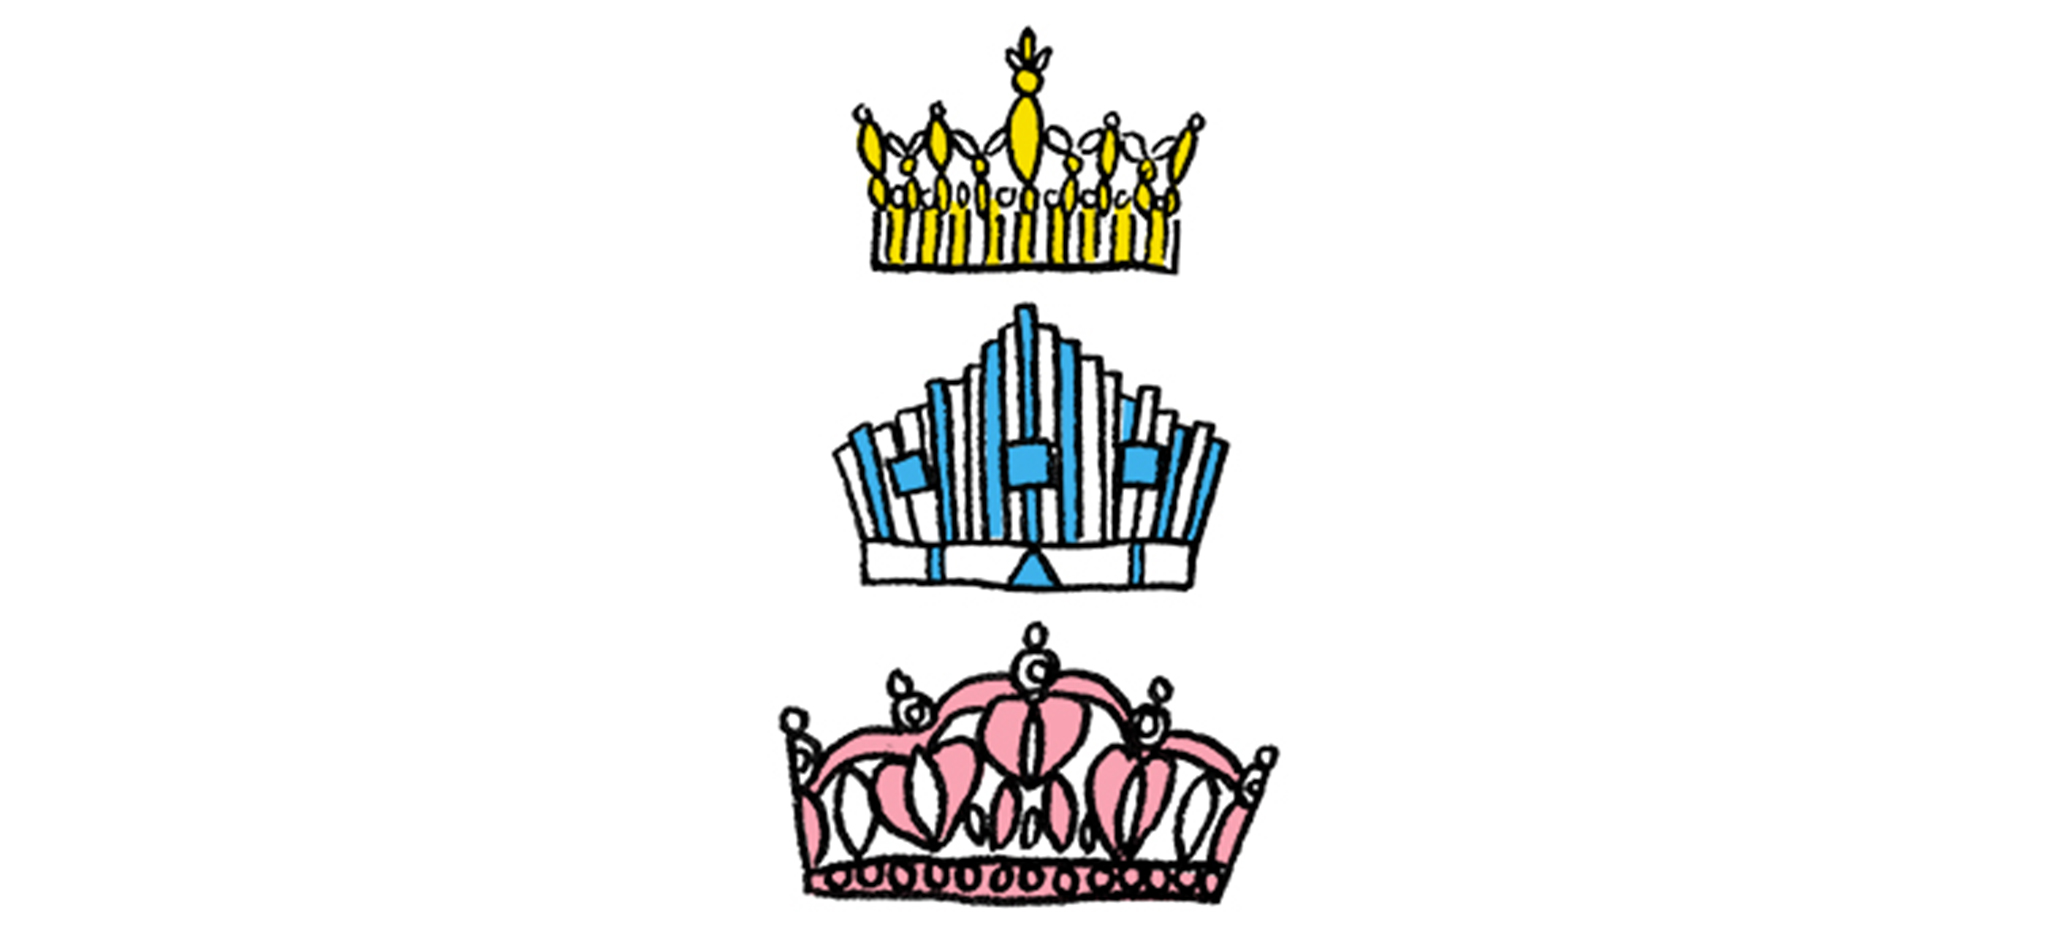 Youth beauty queen being crowned clipart svg royalty free download Why The Philippines Dominates World Beauty Pageants svg royalty free download